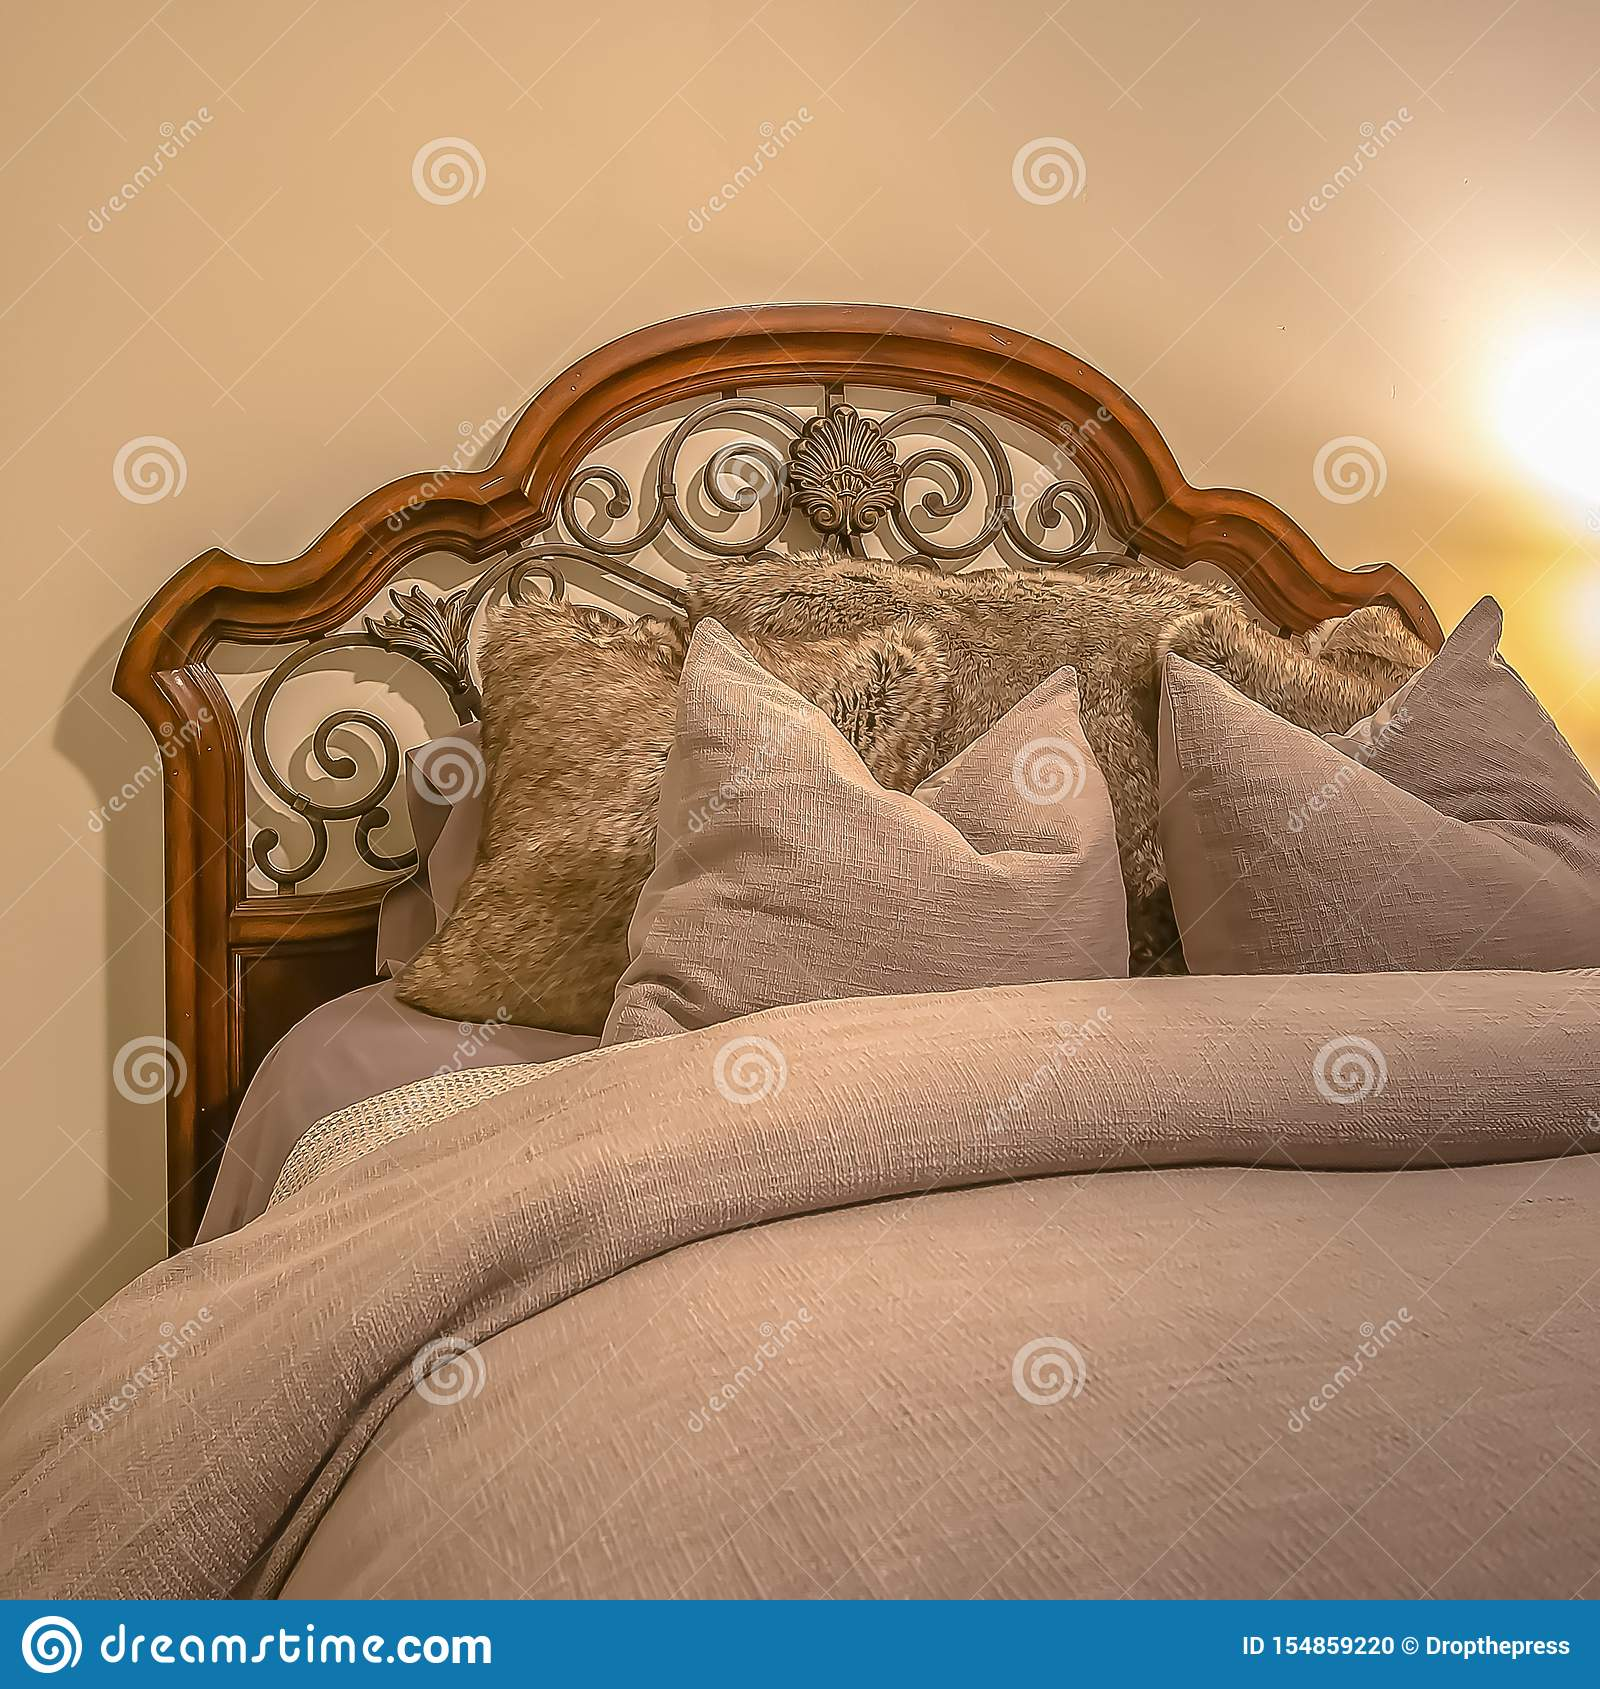 Bed With Wood And Wrought Iron Headboard Inside The Bedroom Of A Home Stock Photo Image Of Side Relaxation 154859220